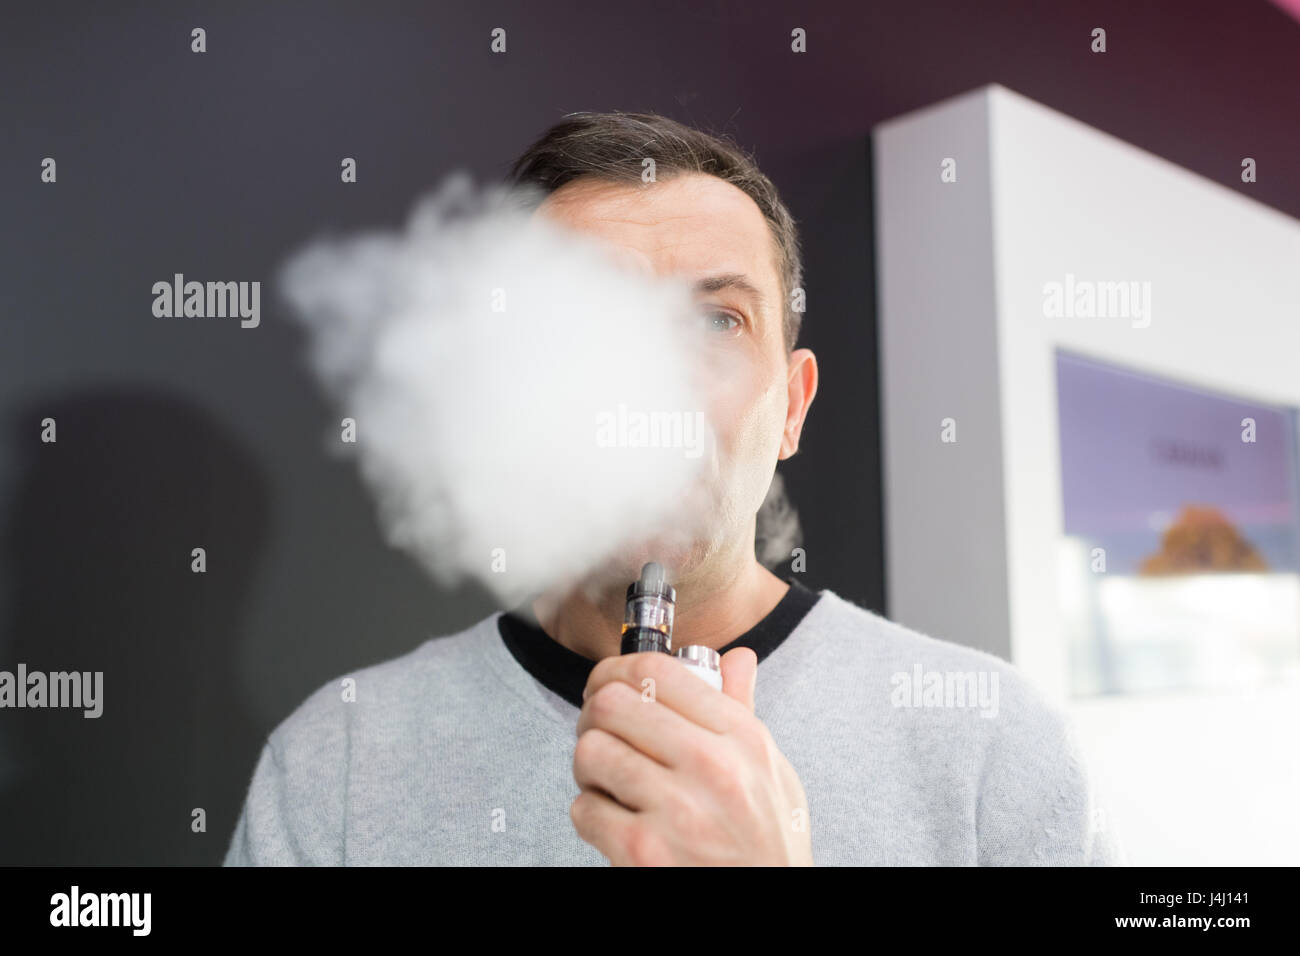 man obscured behind a cloud of vaporizer smoke - Stock Image